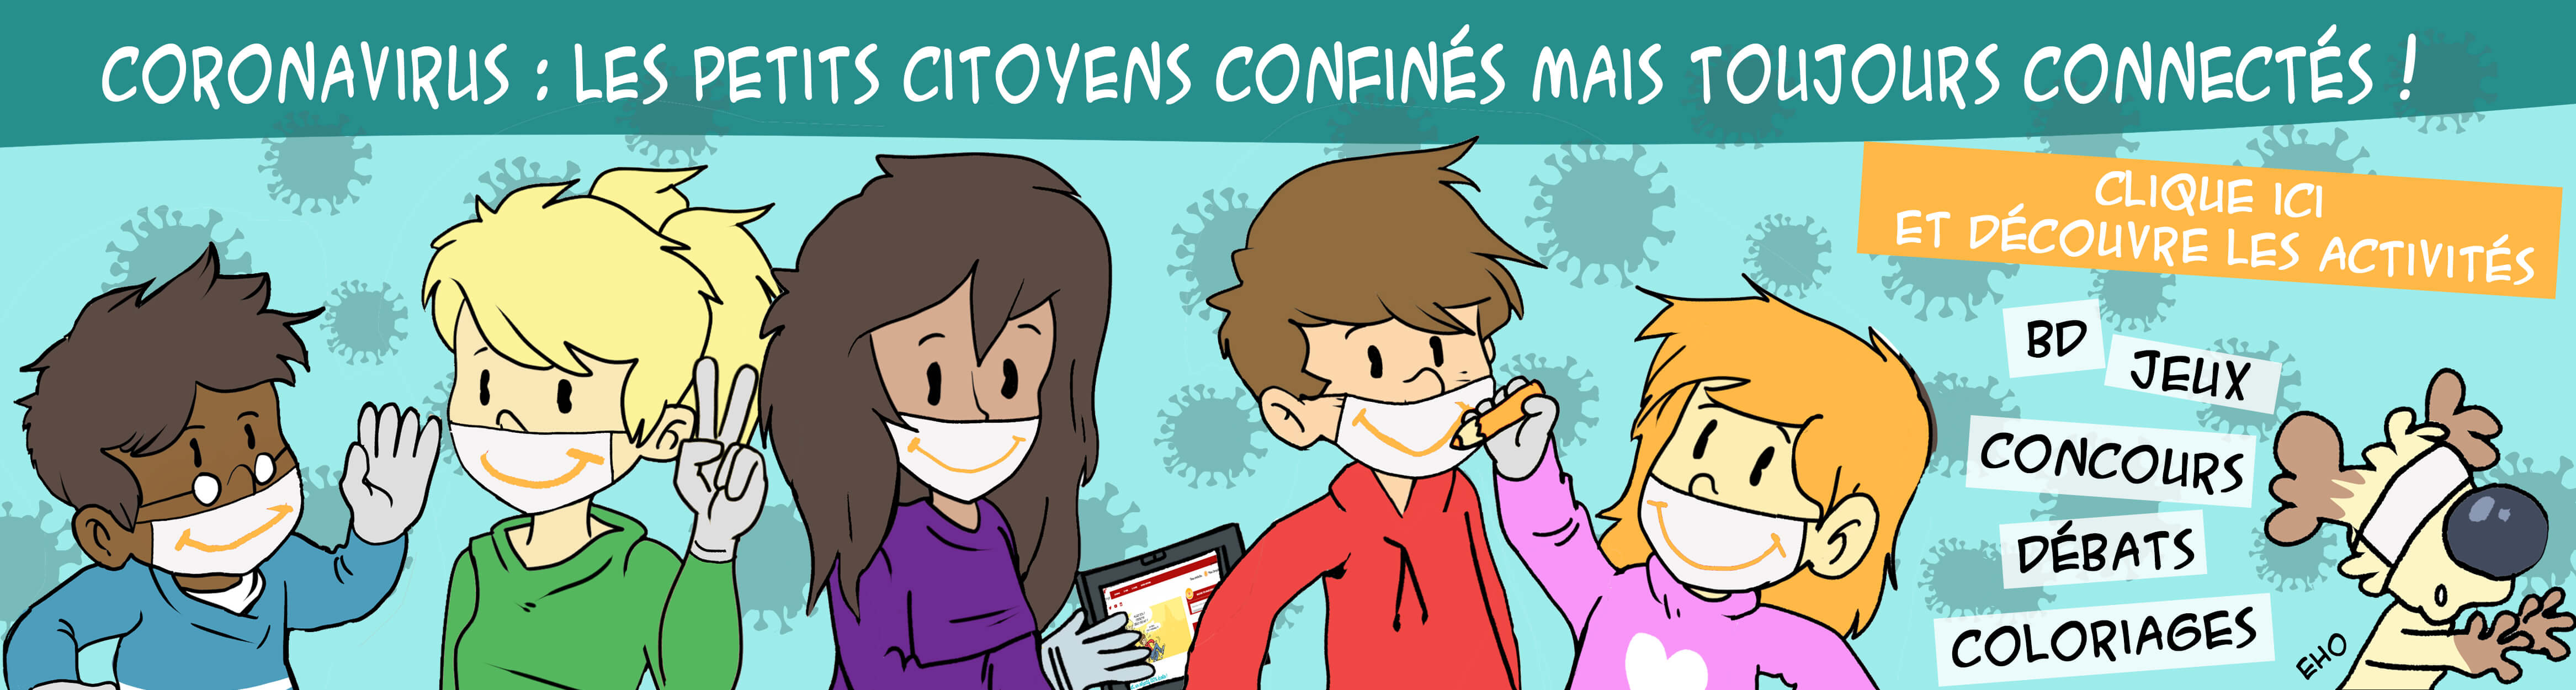 activites_enfants_confinement_coronavirus